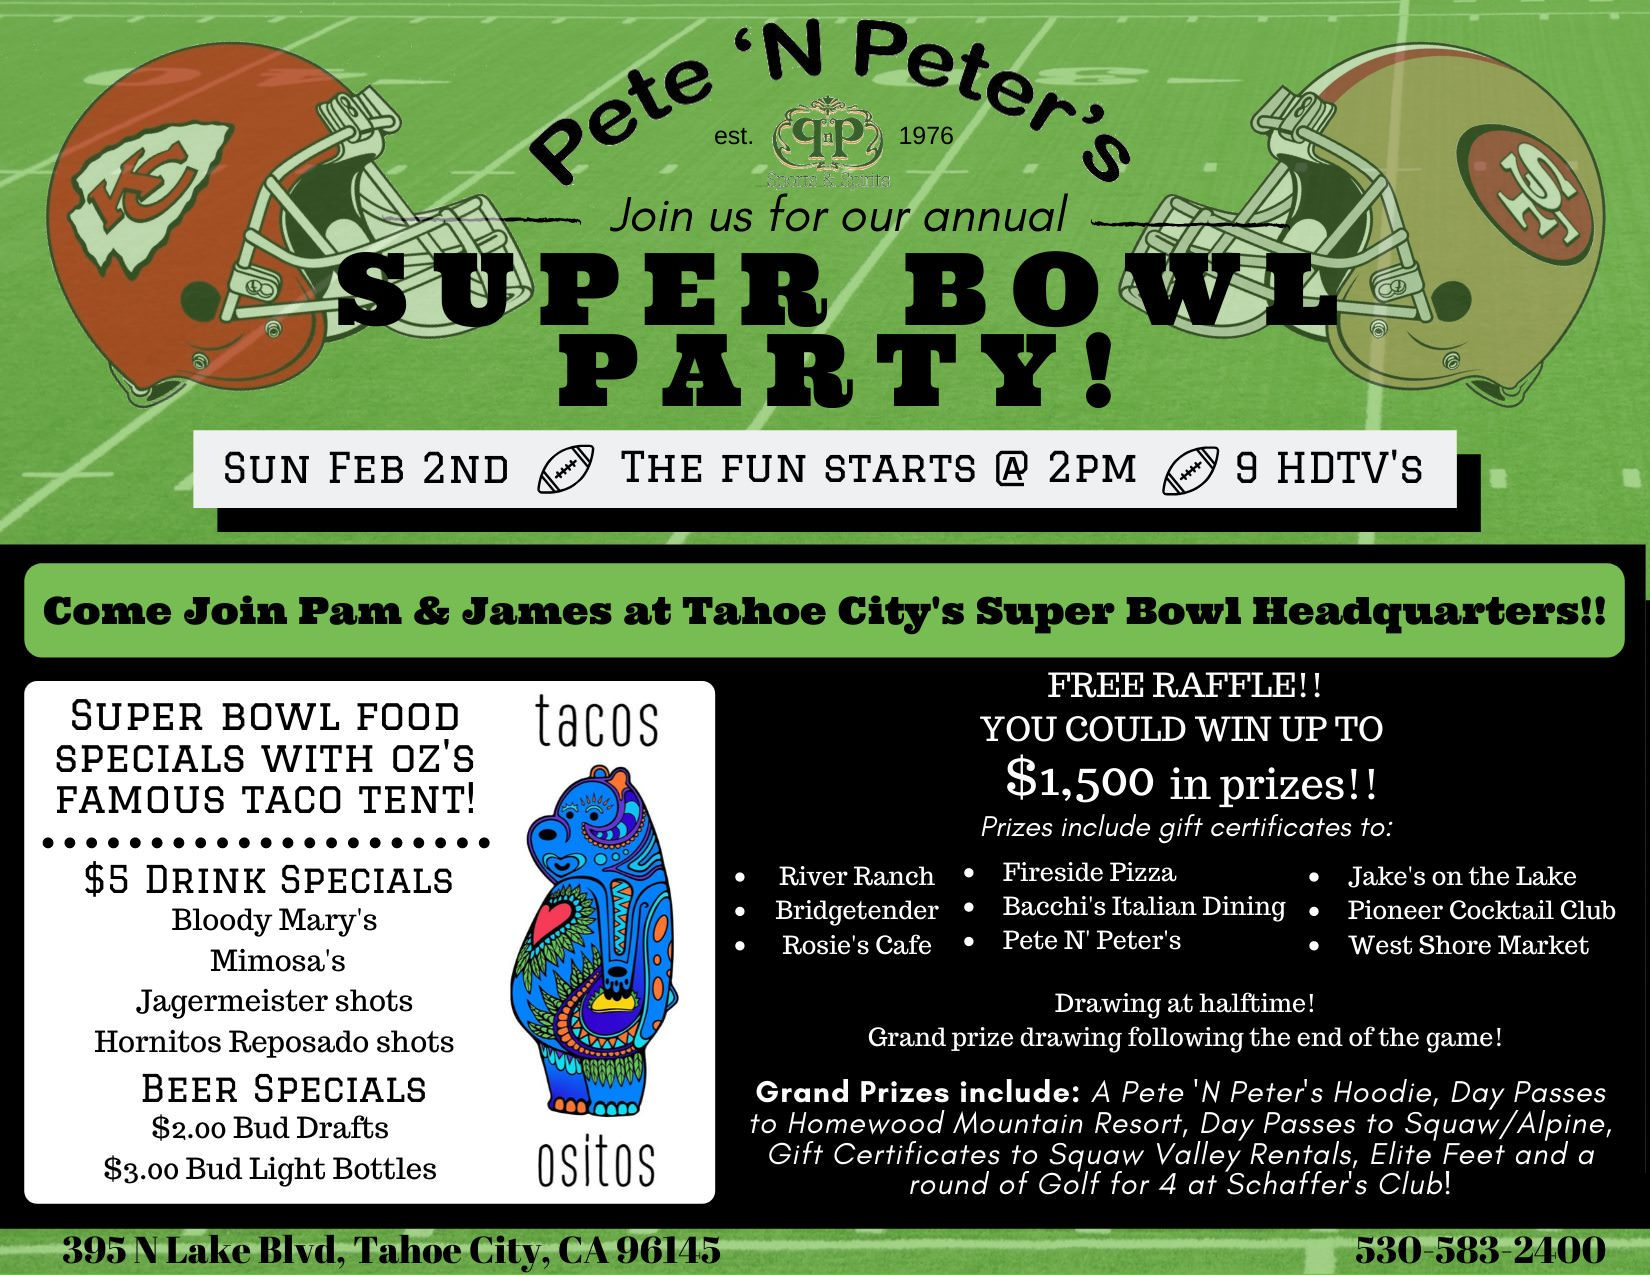 Pete 'n Peter's 2020 Super Bowl Party